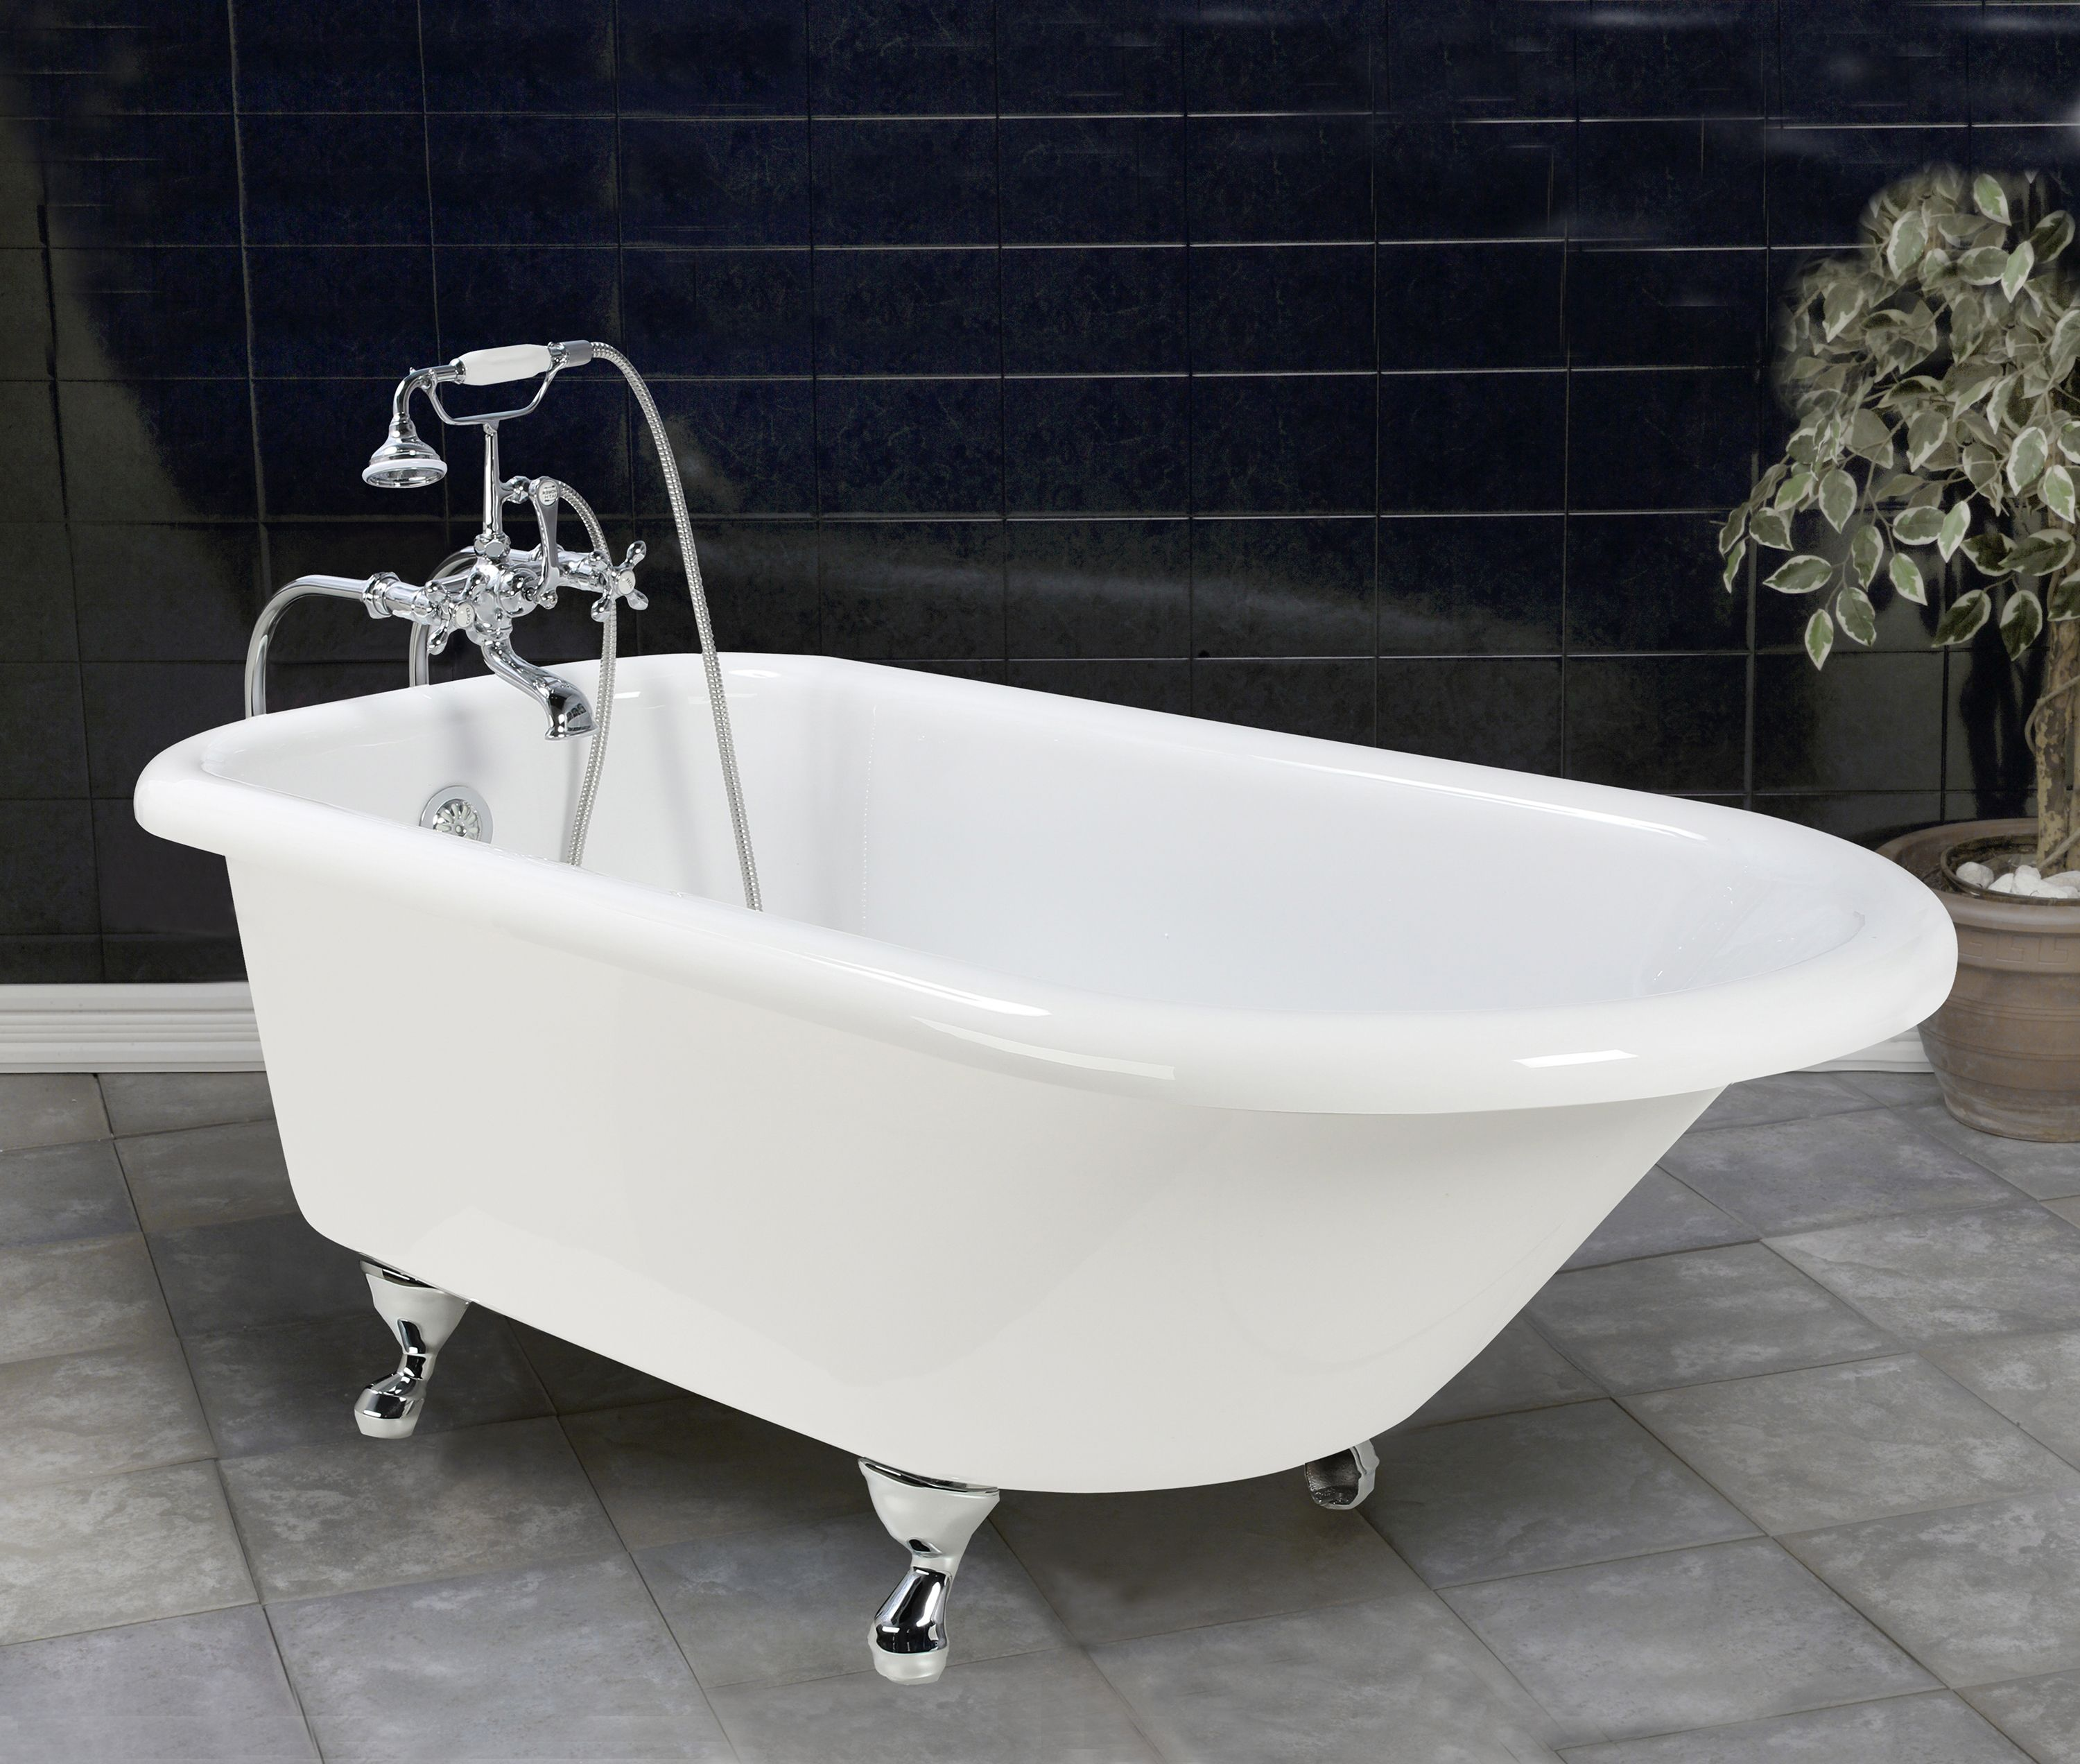 Old Bathtubs Home Products Chedworth 5 Old Fashioned